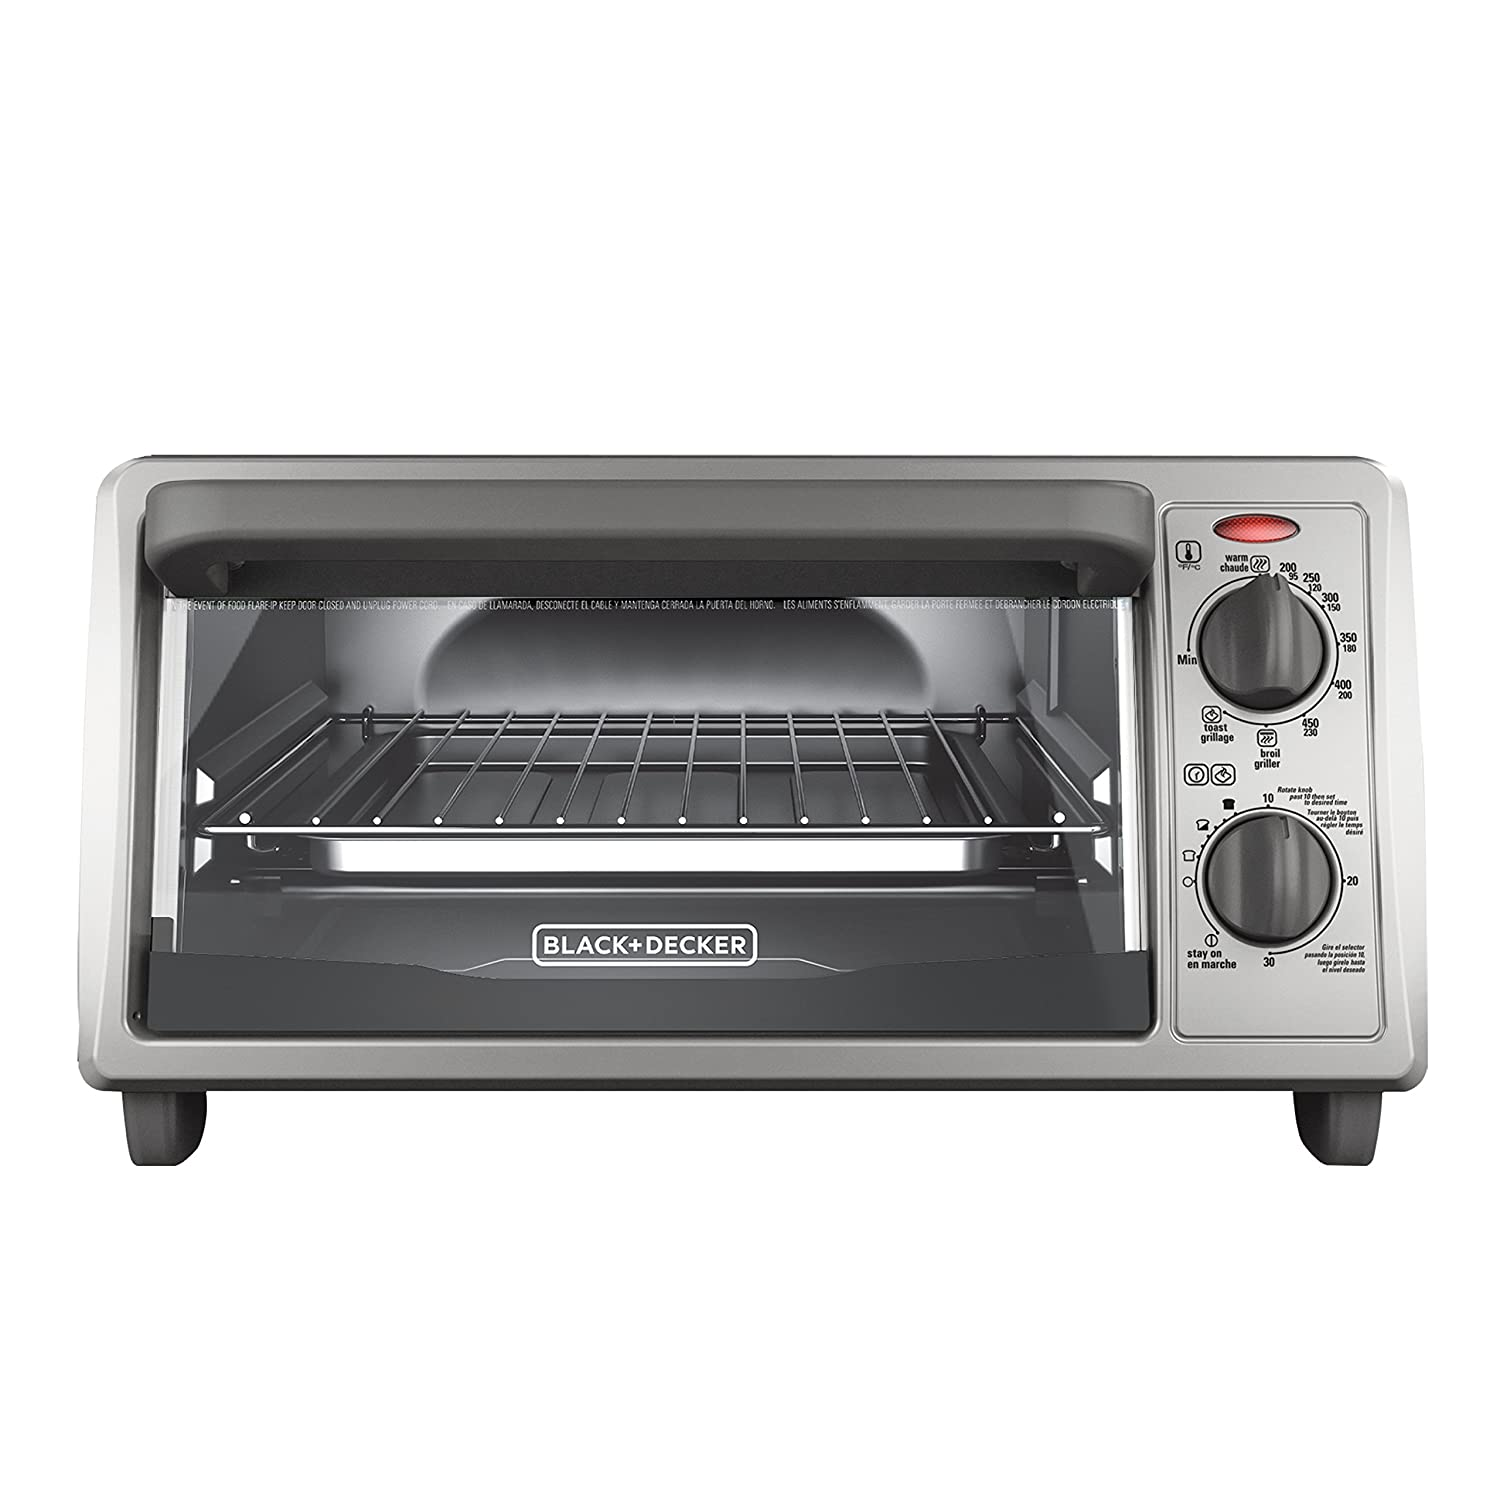 BLACK+DECKER 4-Slice Countertop Toaster Oven, Stainless steel Silver TO1322SBD